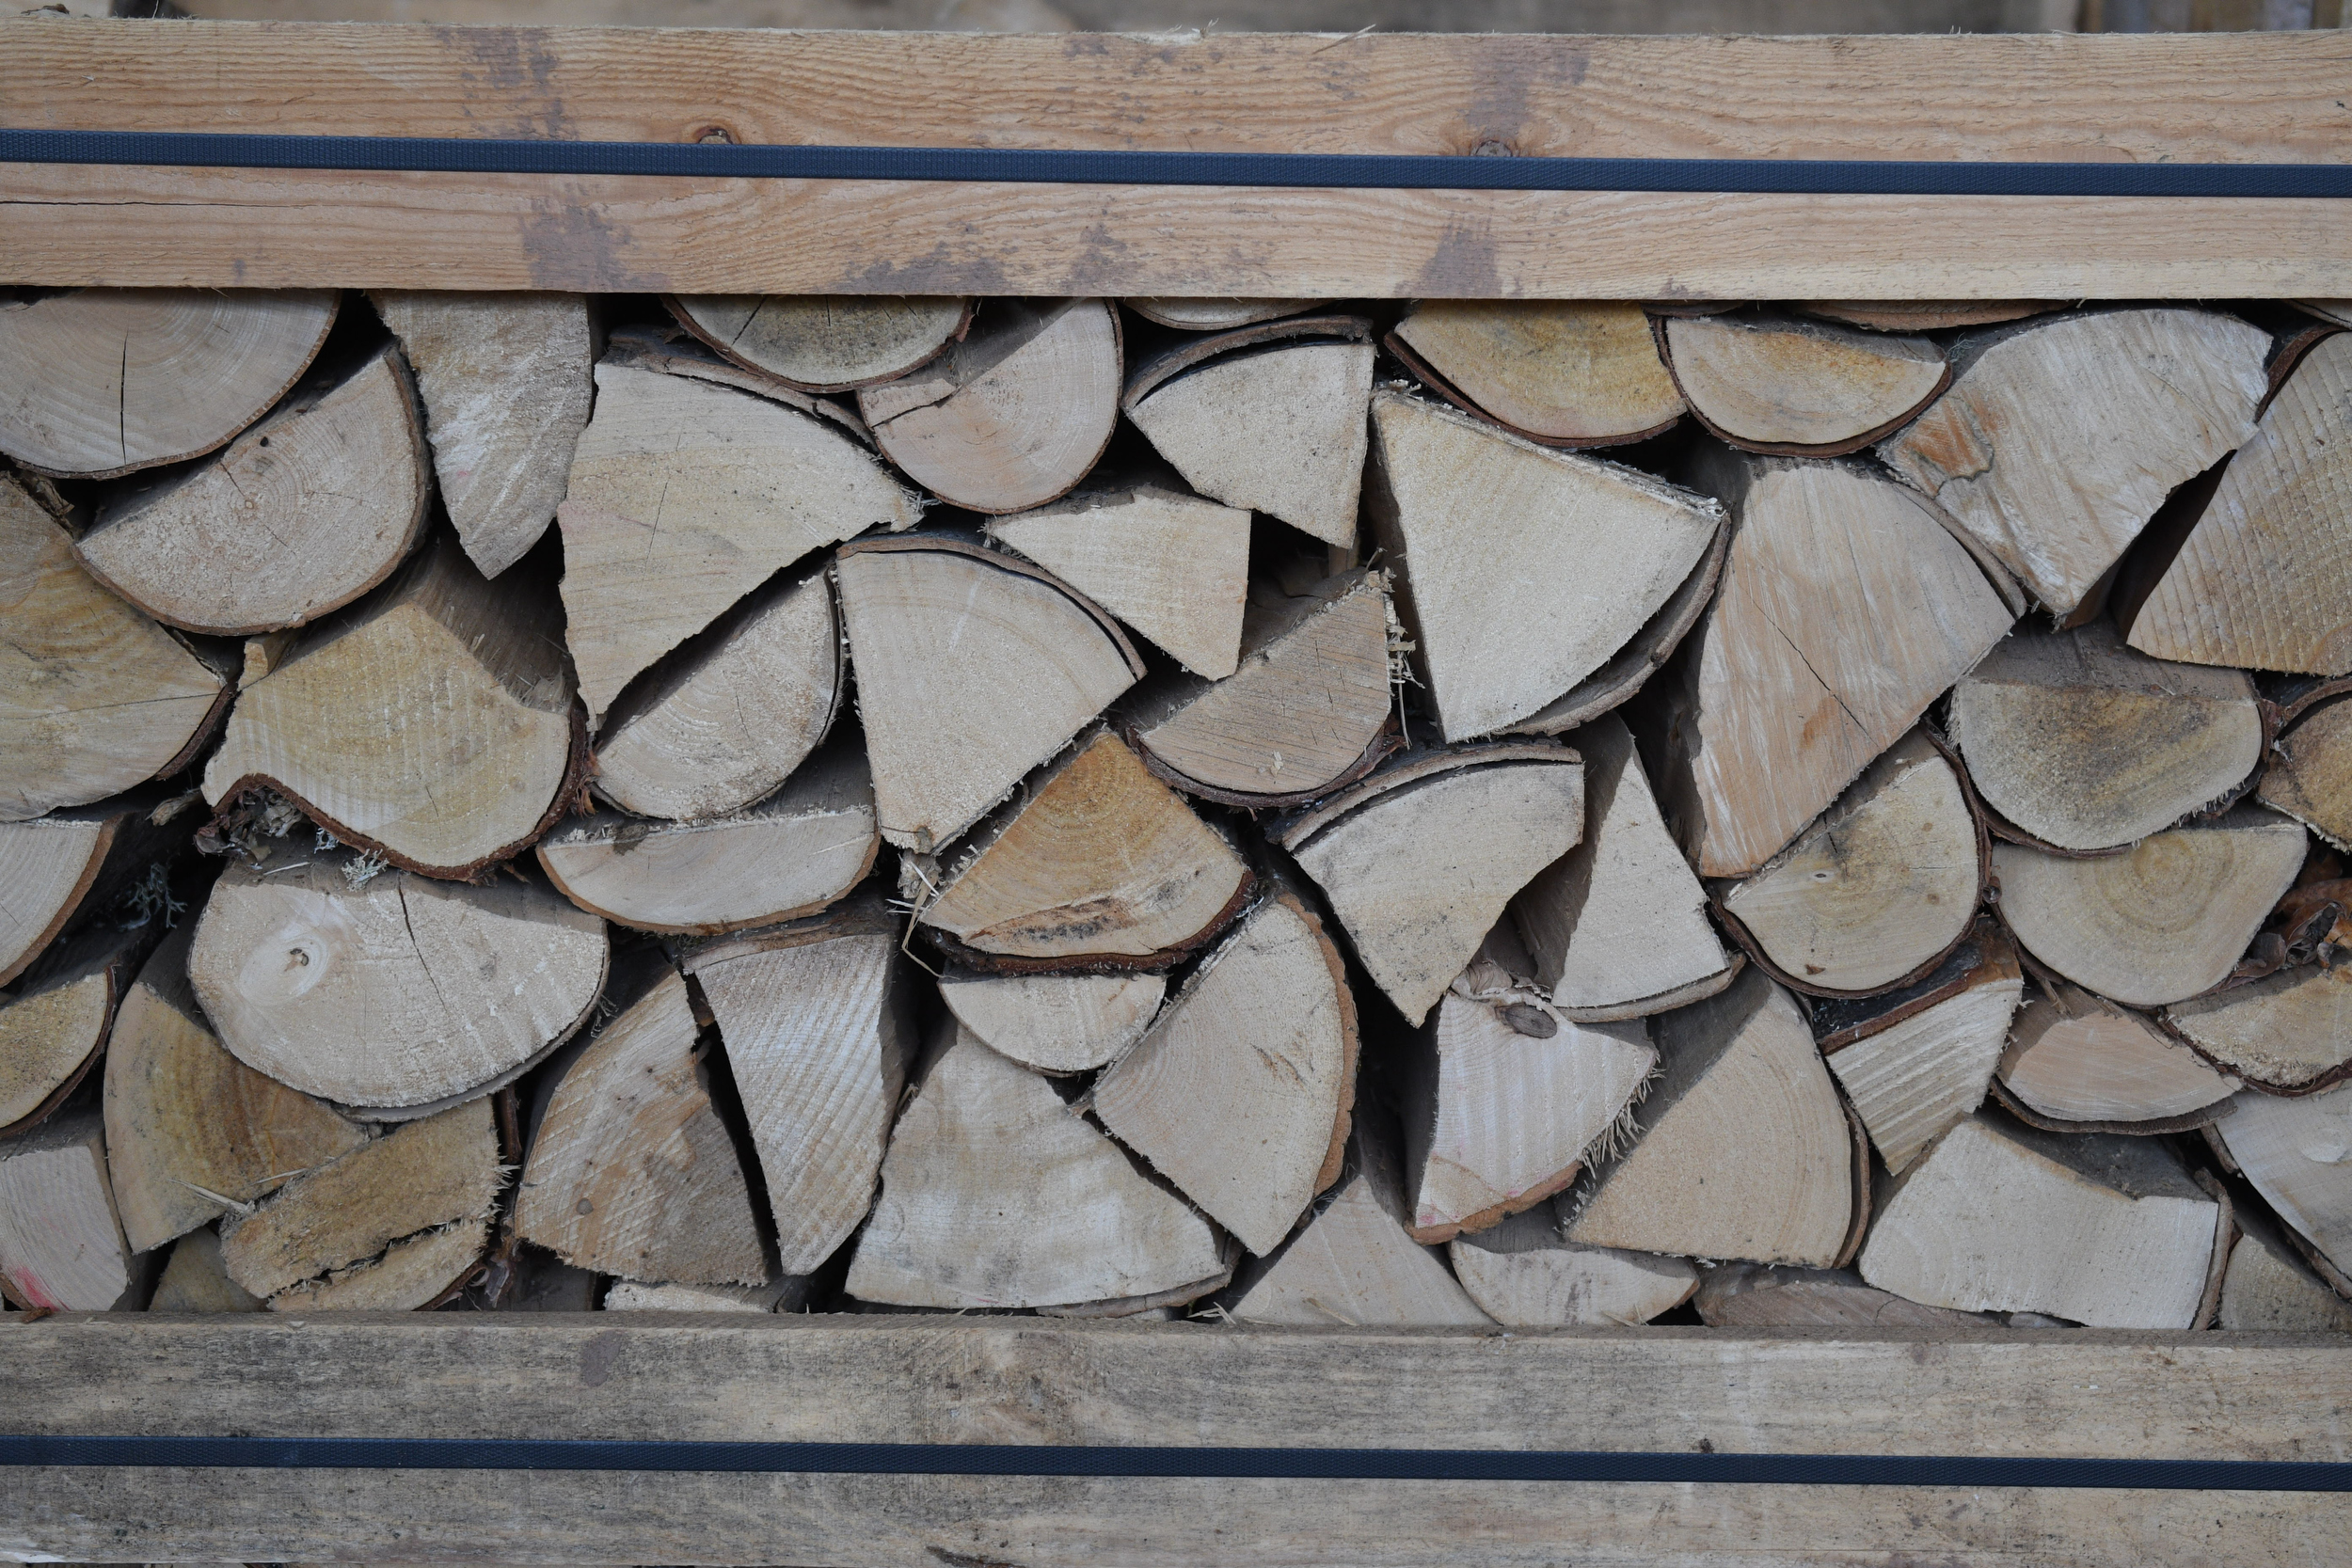 How to store firewood